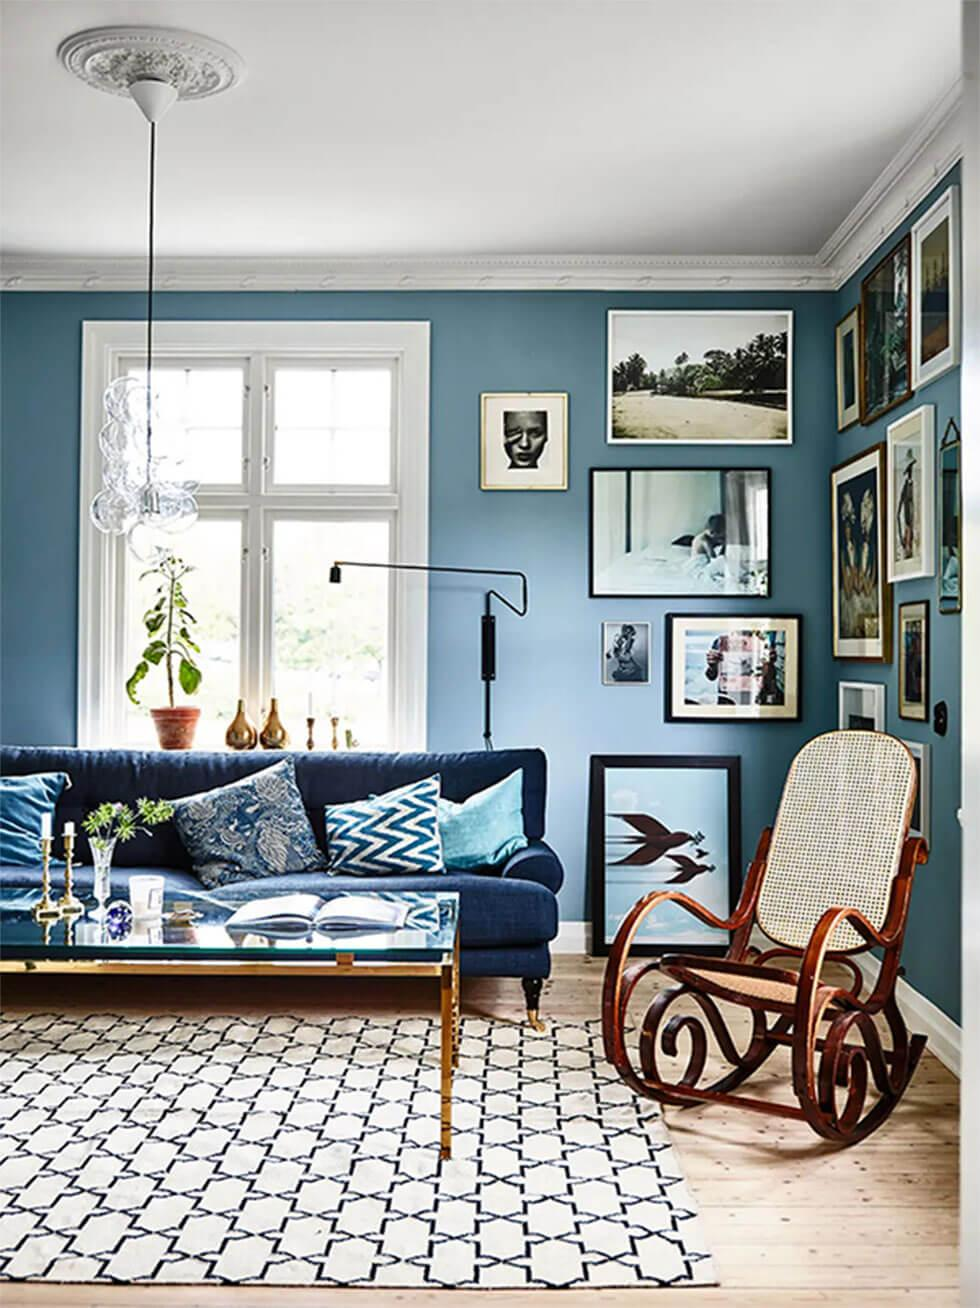 A blue living room with a gallery wall and a blue sofa.